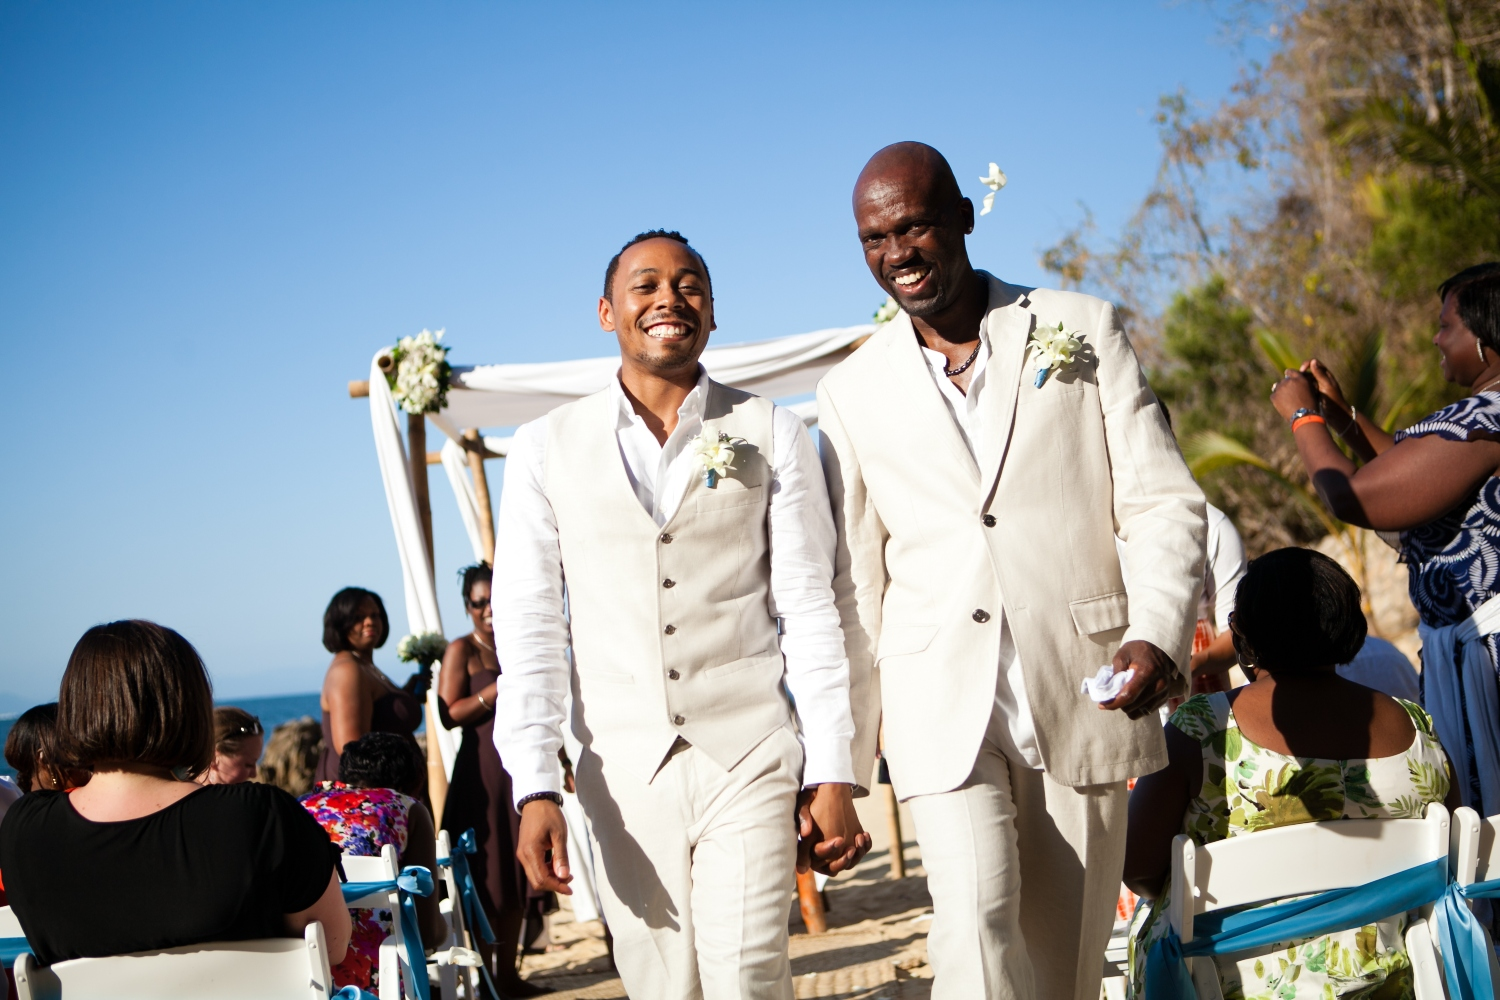 Ceremony Planning Tips for LGBTQ-Friendly Weddings